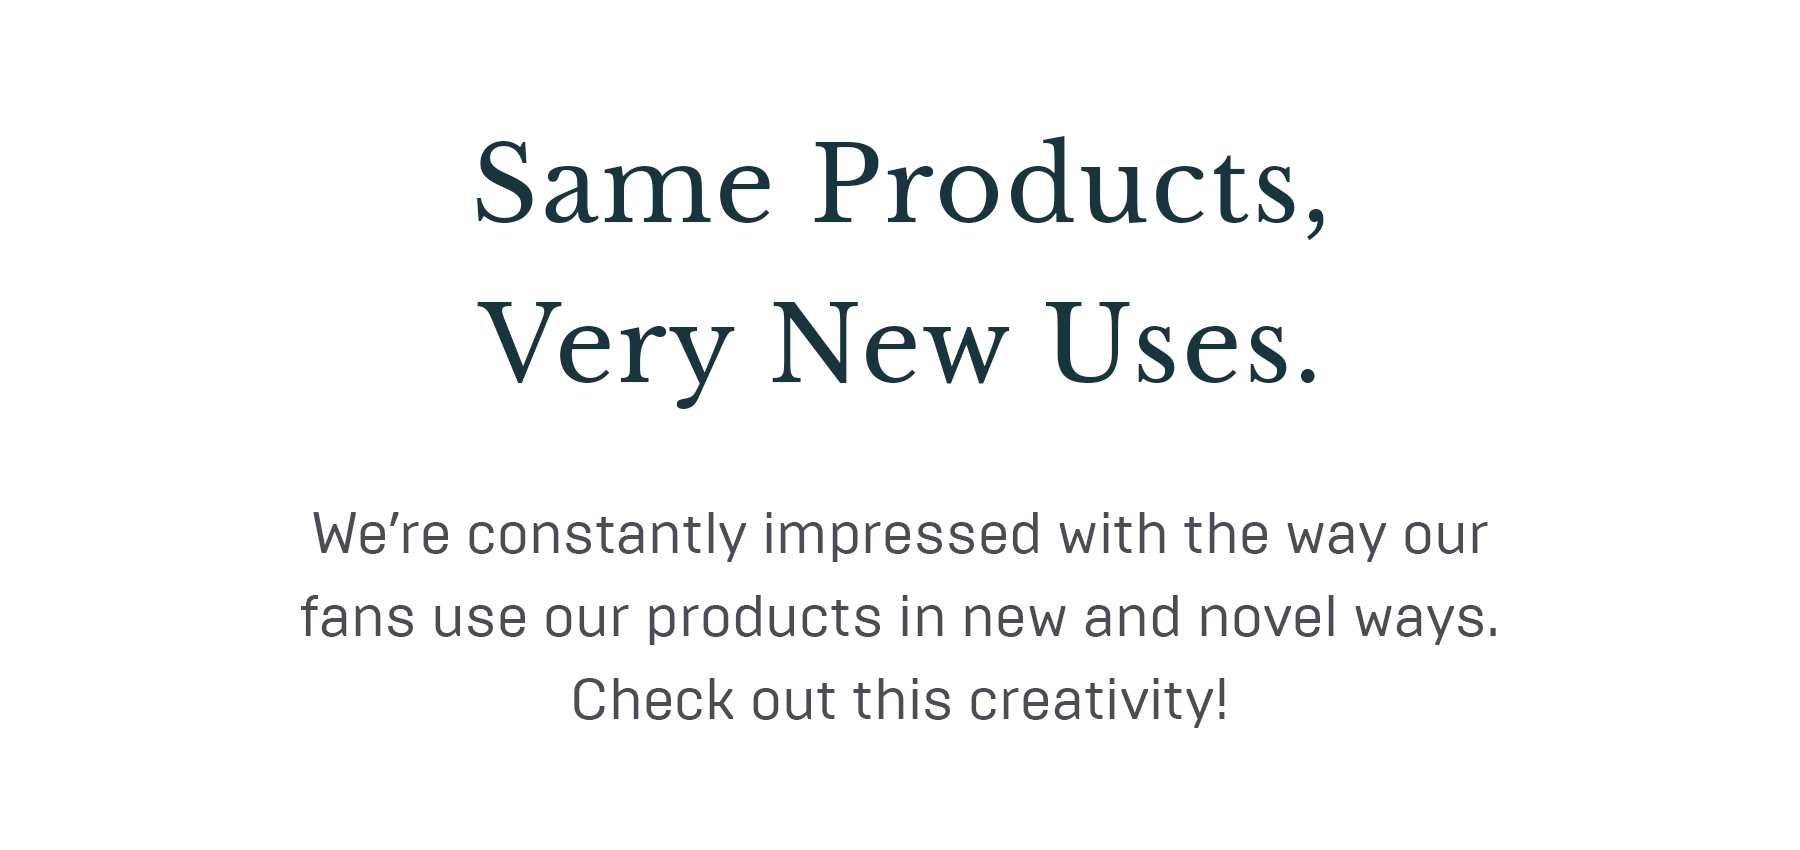 Same Products, Very New Uses